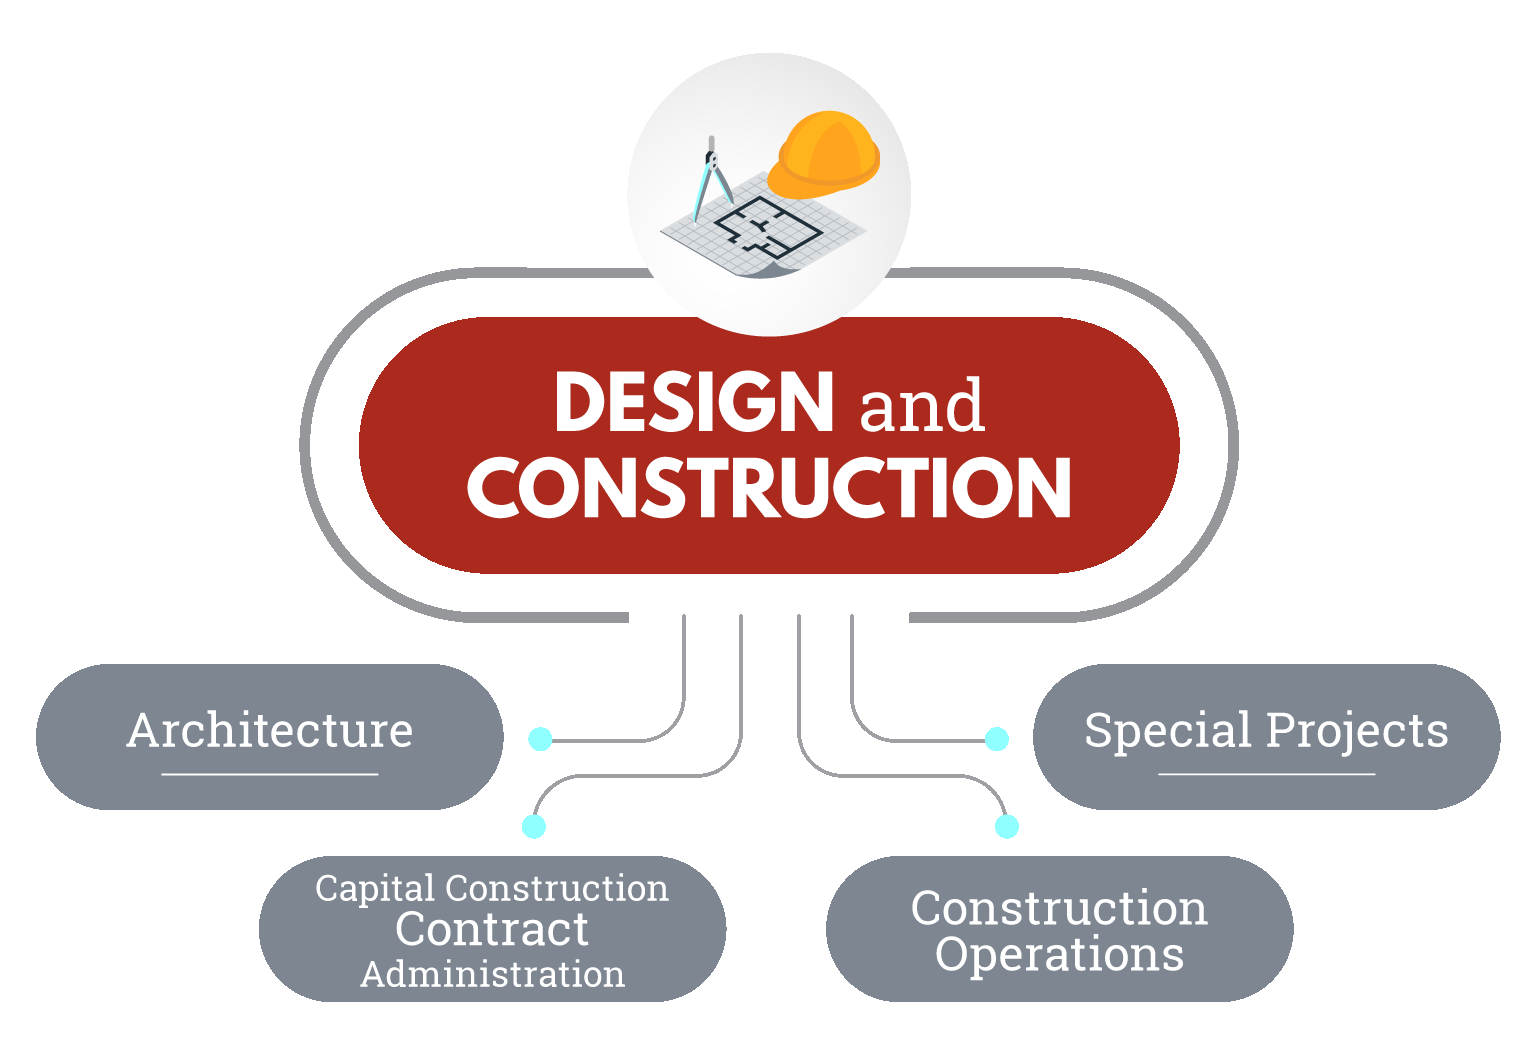 The Division of Design and Construction